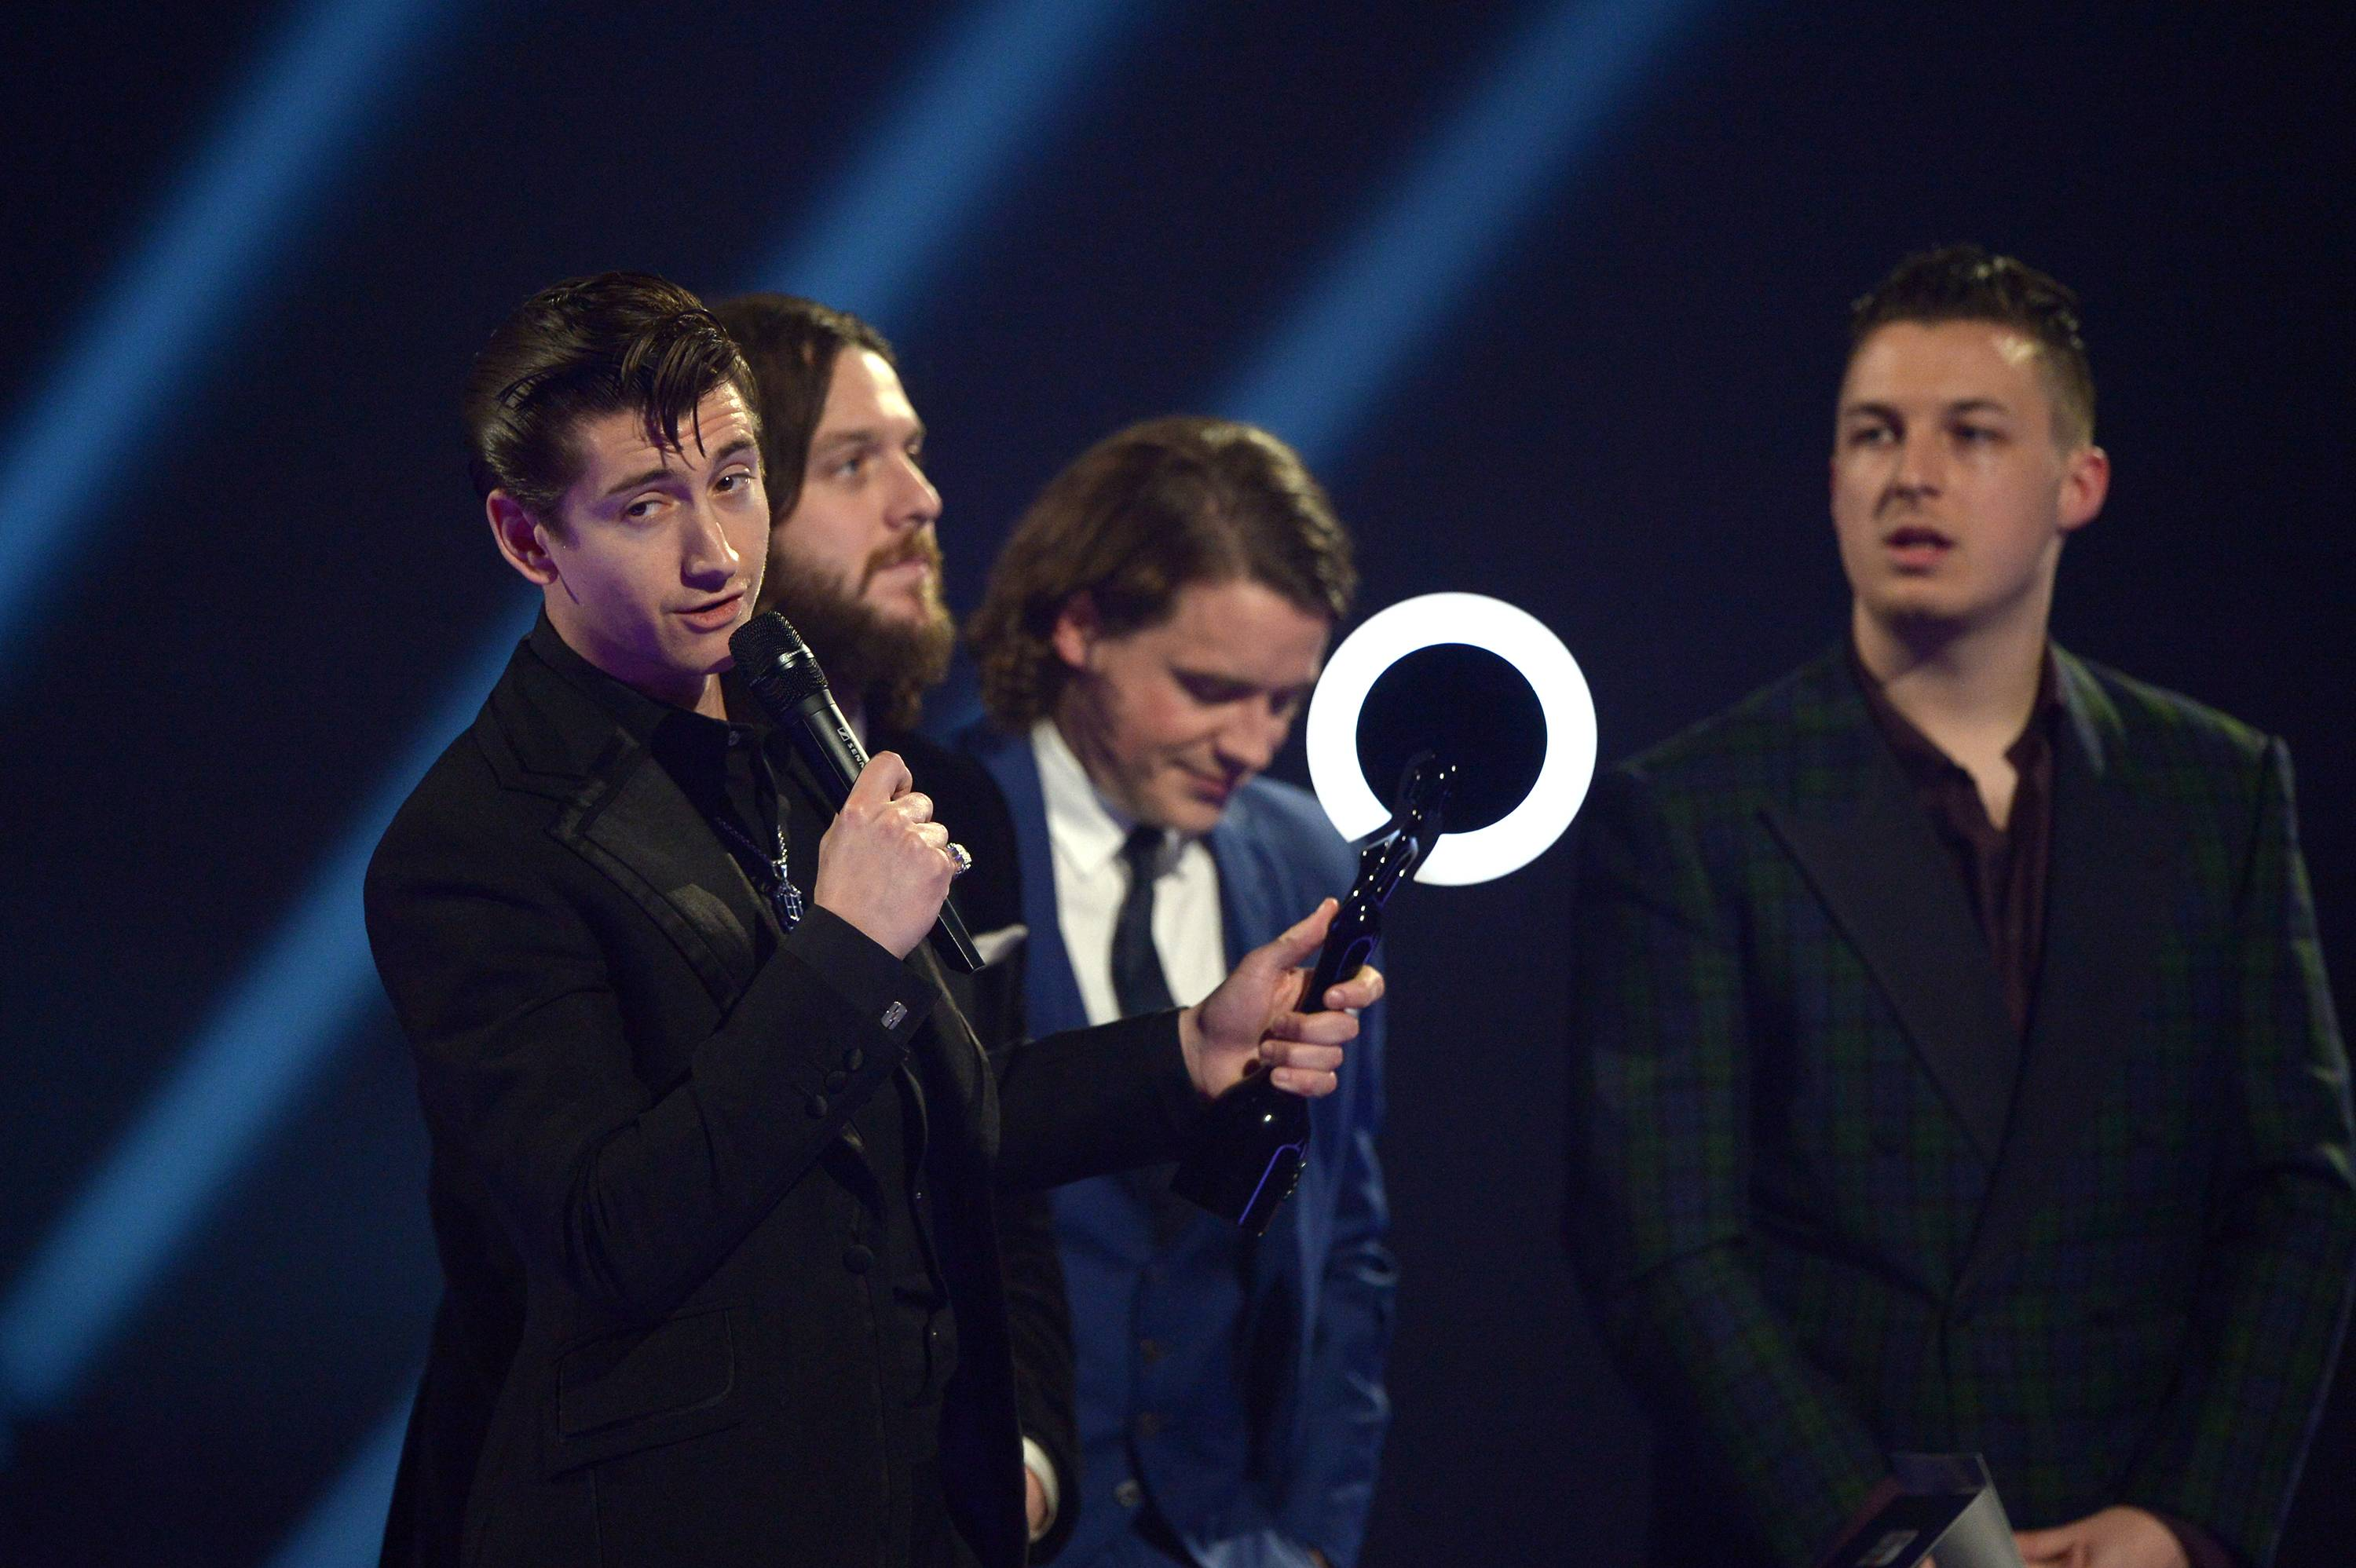 British band Arctic Monkeys accept the Best Album of the Year award onstage at the BRIT Awards 2014 at the O2 Arena in London on Wednesday.